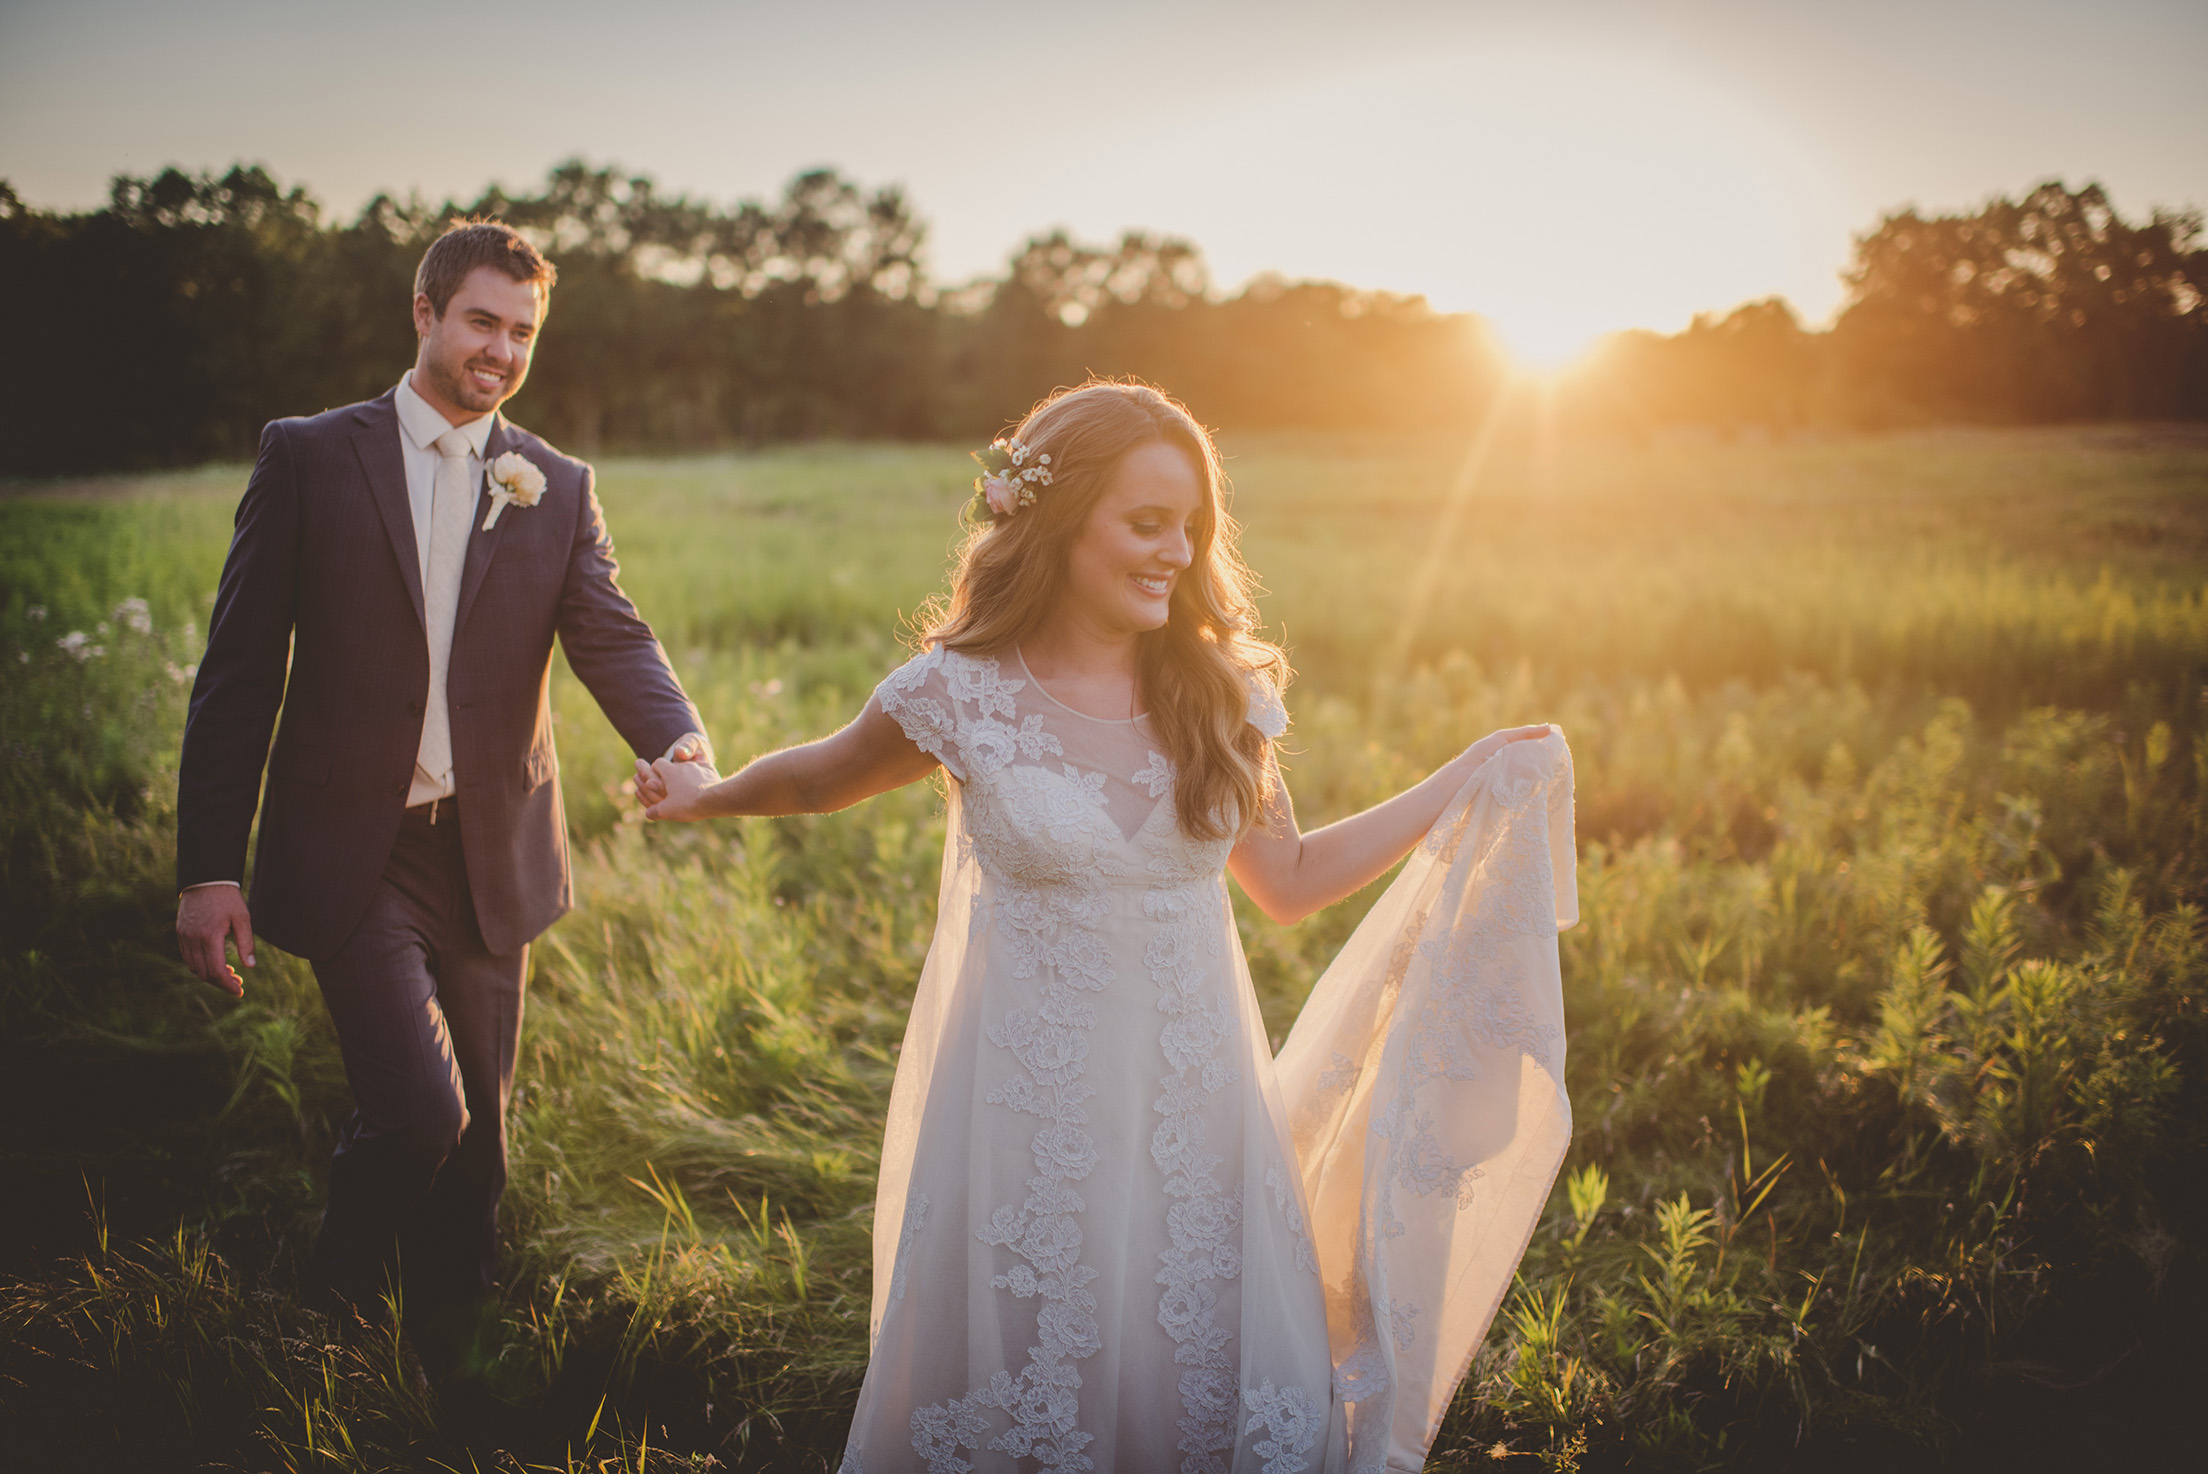 Blog MAKING SENSE OF THE DIFFERENT WEDDING PHOTOGRAPHY STYLES